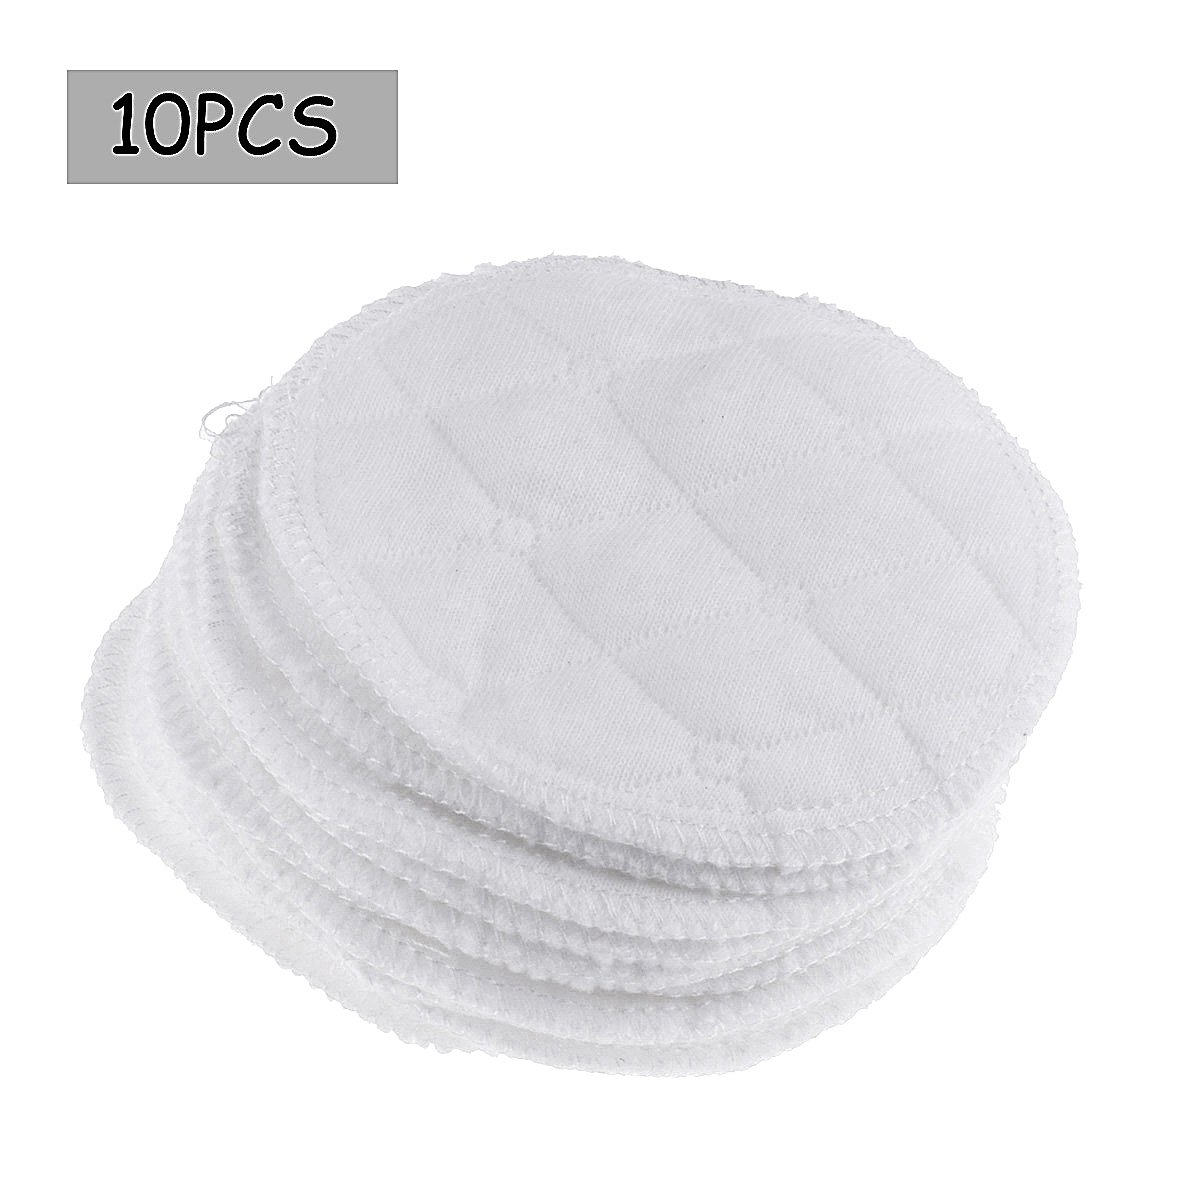 10Pc Washable Women Soft Cotton Absorbent Nursing Pads Round Breast Pads Breastfeeding Pads